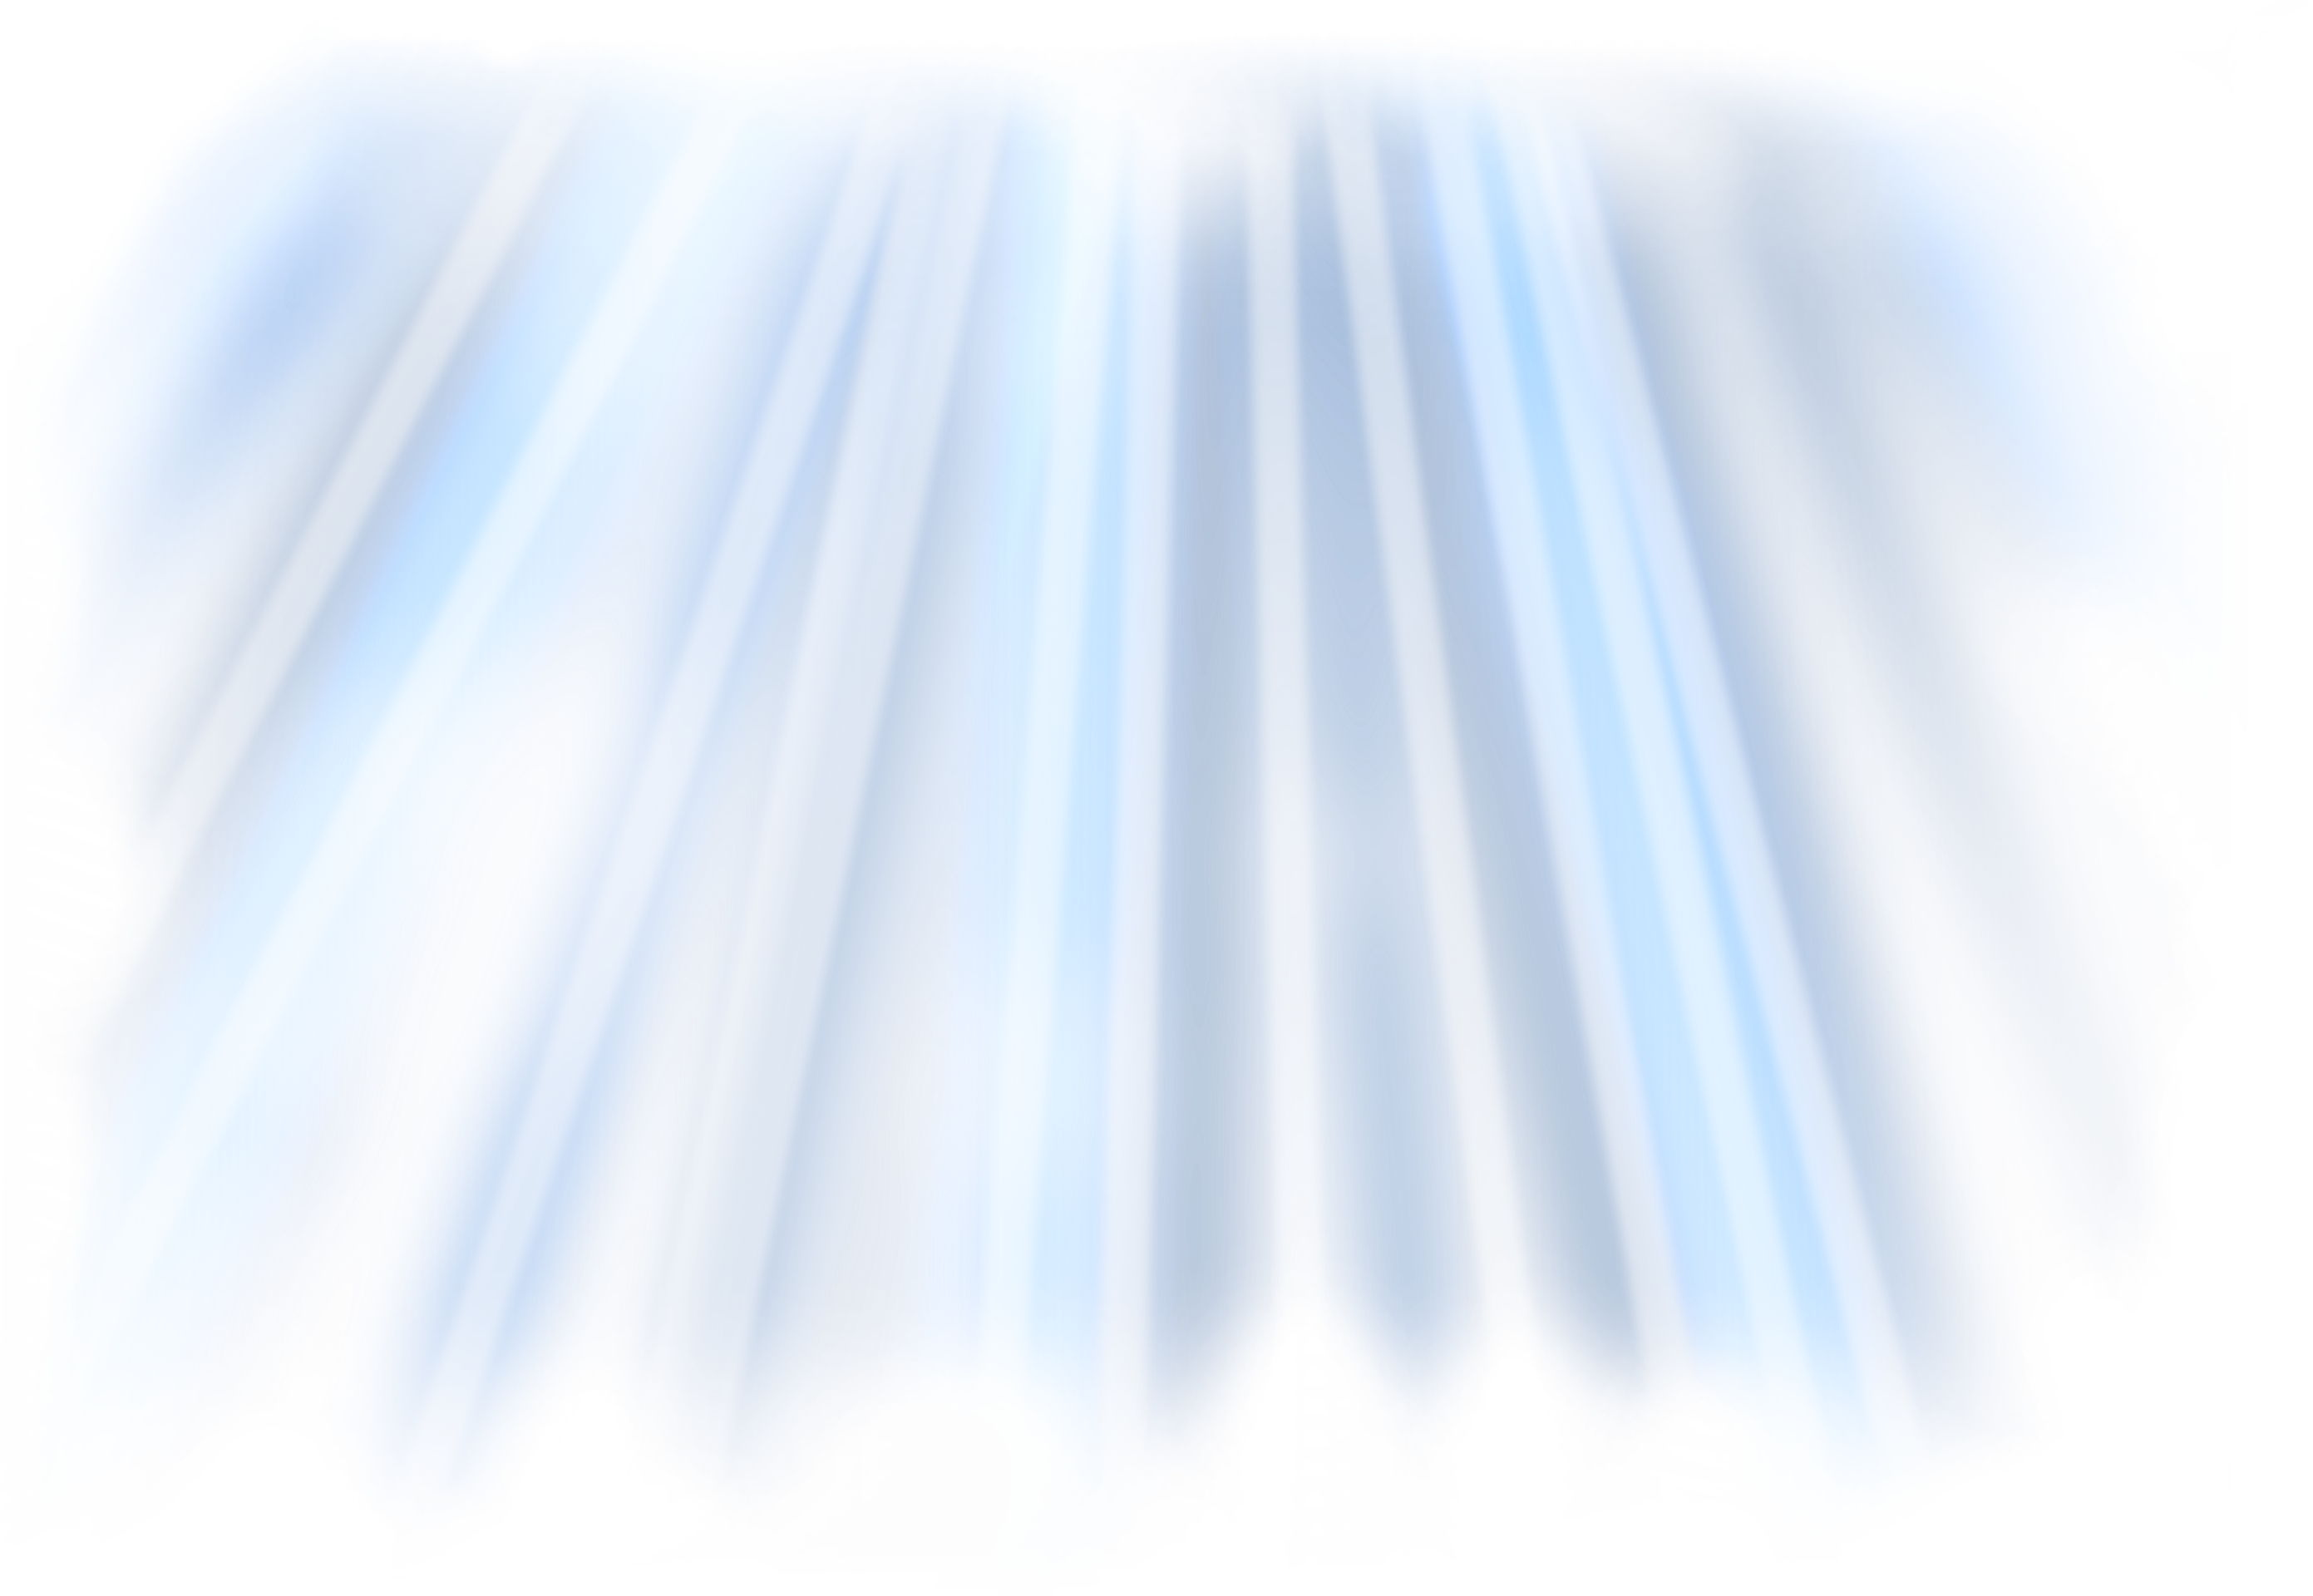 Blue light png. Rays of transparent images